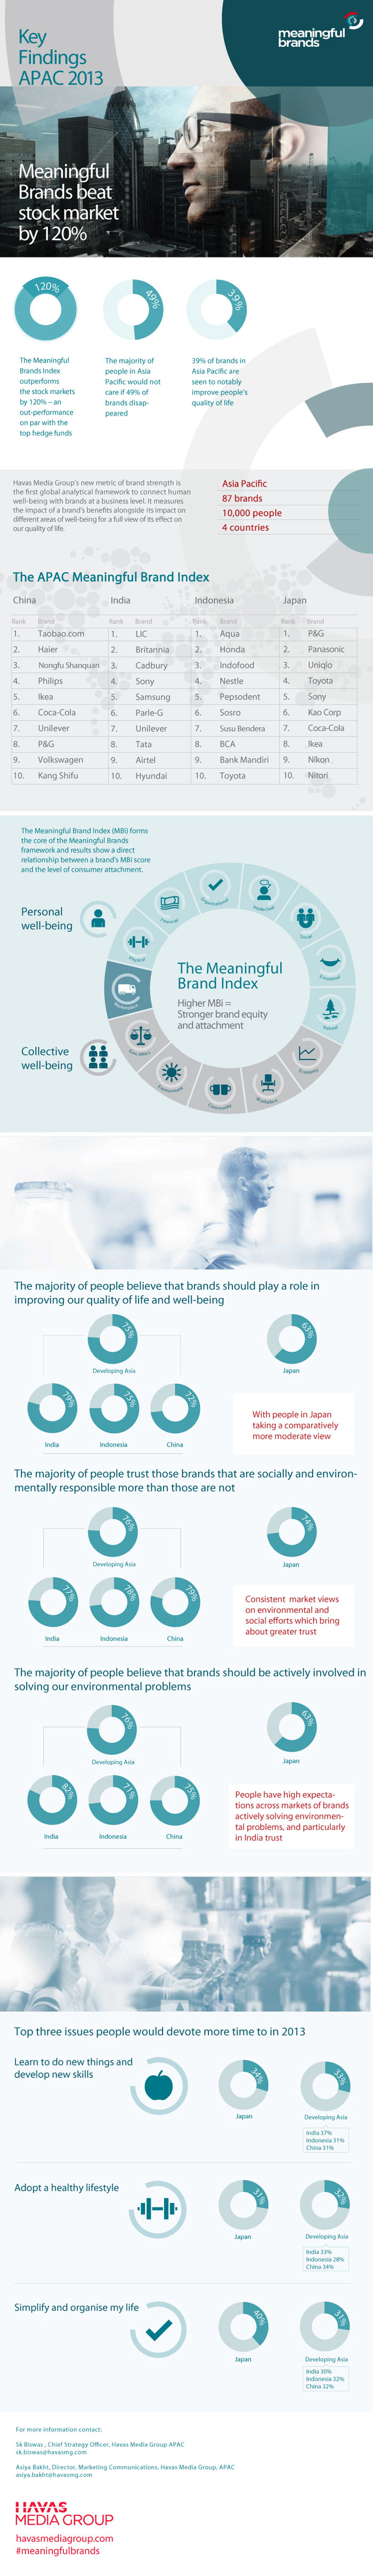 Meaningful Brands study 2013: key findings for Asia-Pacific